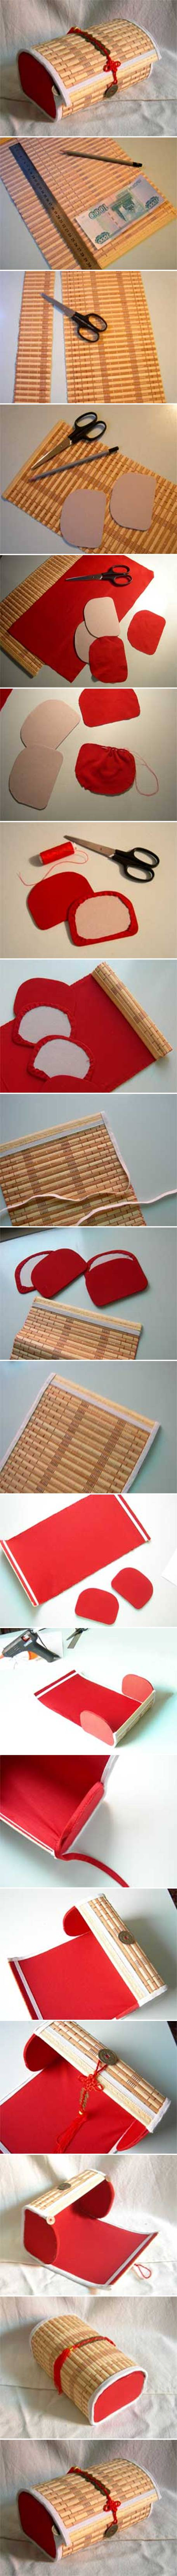 How to make Bamboo Placemat Box step by step DIY instructions